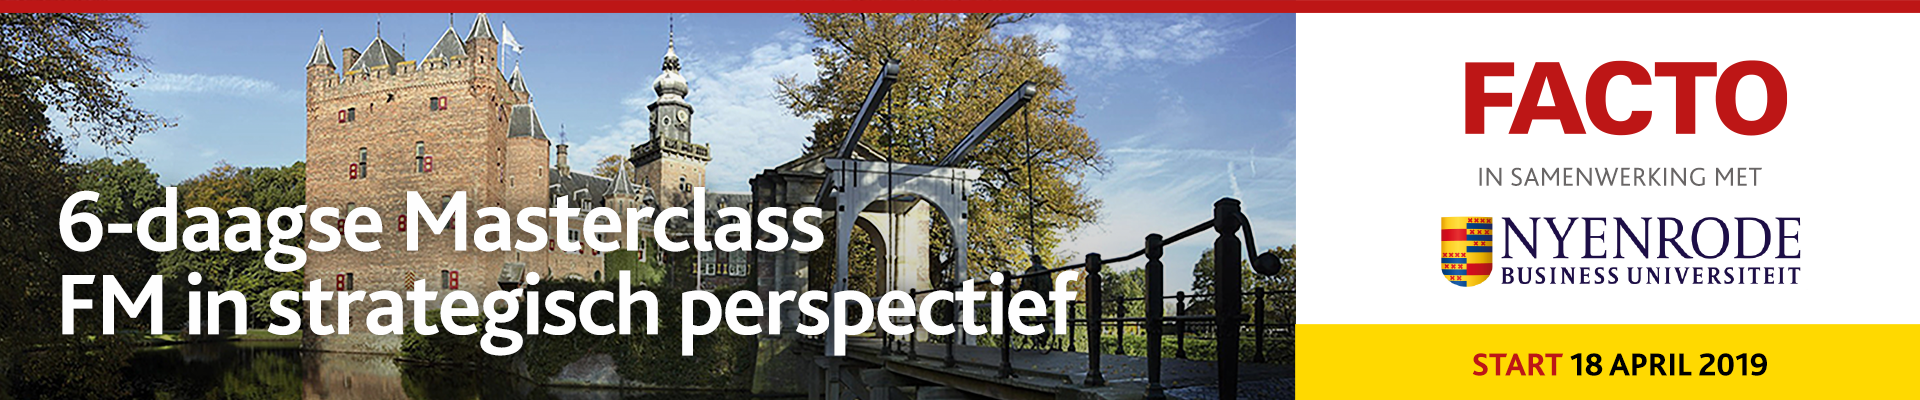 Facto Masterclass FM in strategisch perspectief